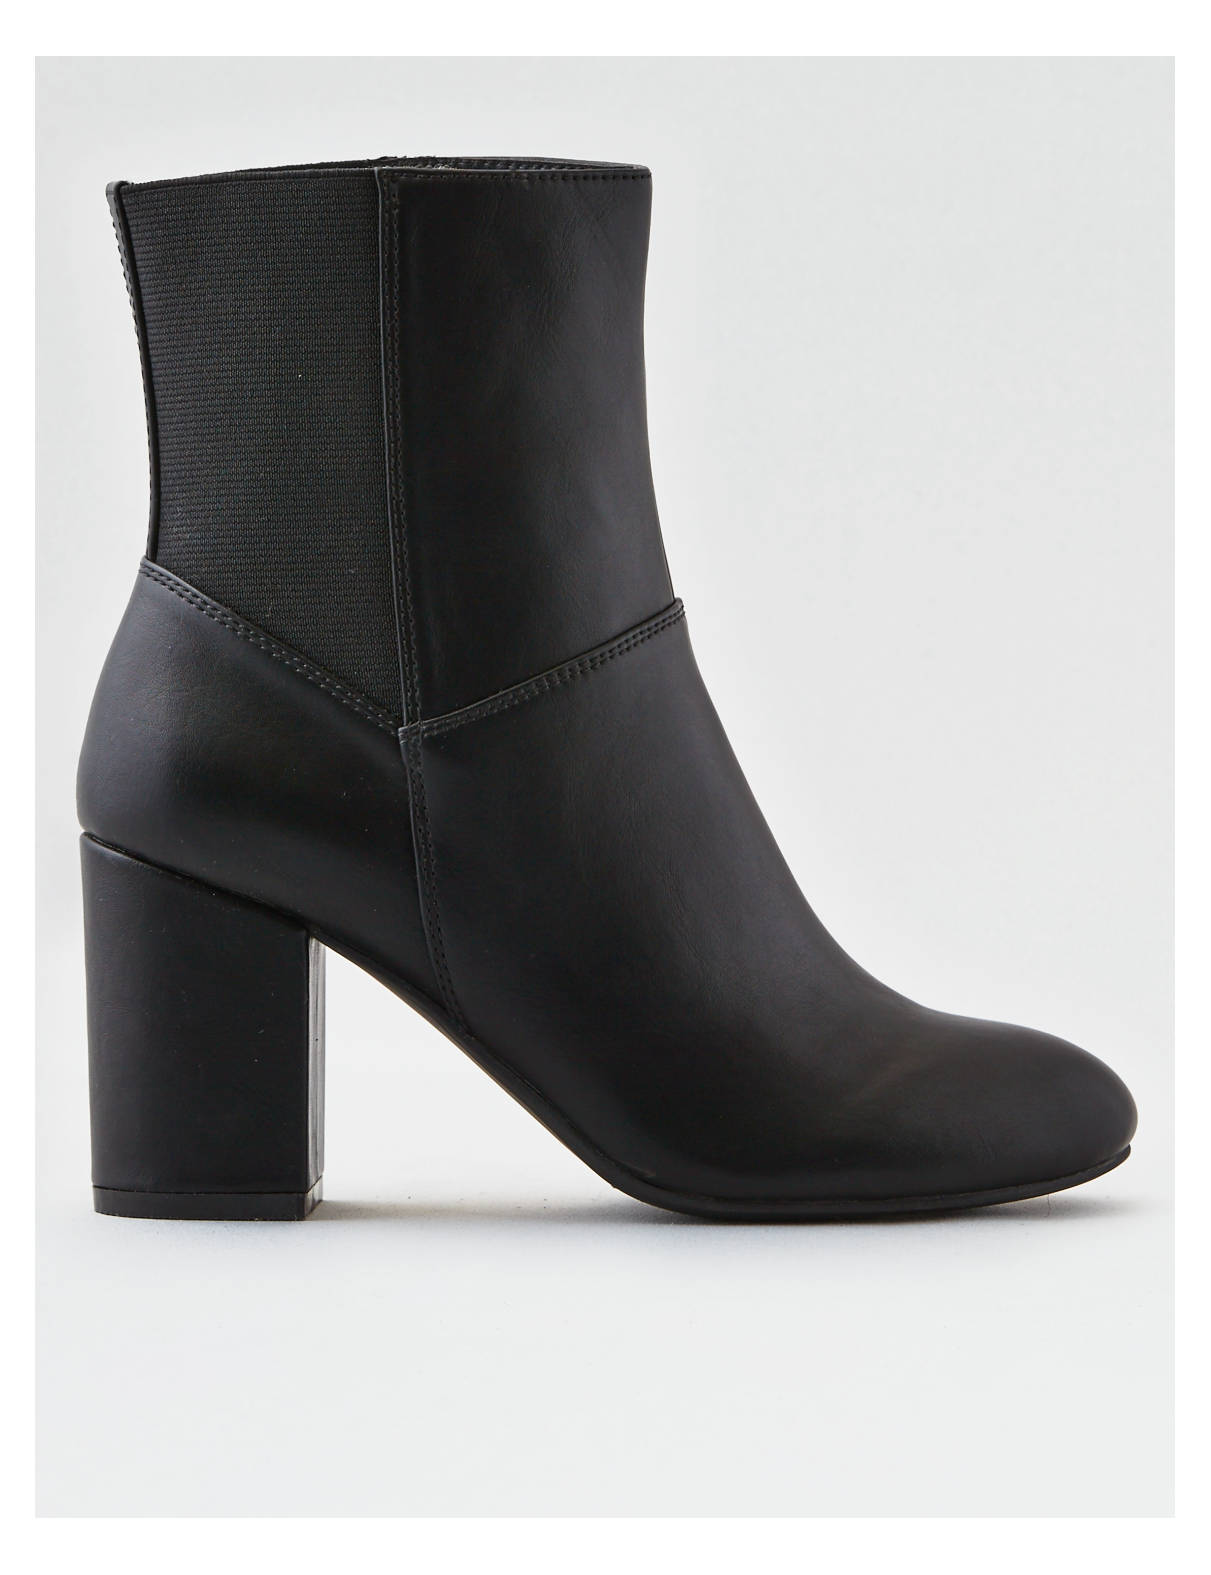 Display product reviews for AEO Stretch Block Heel